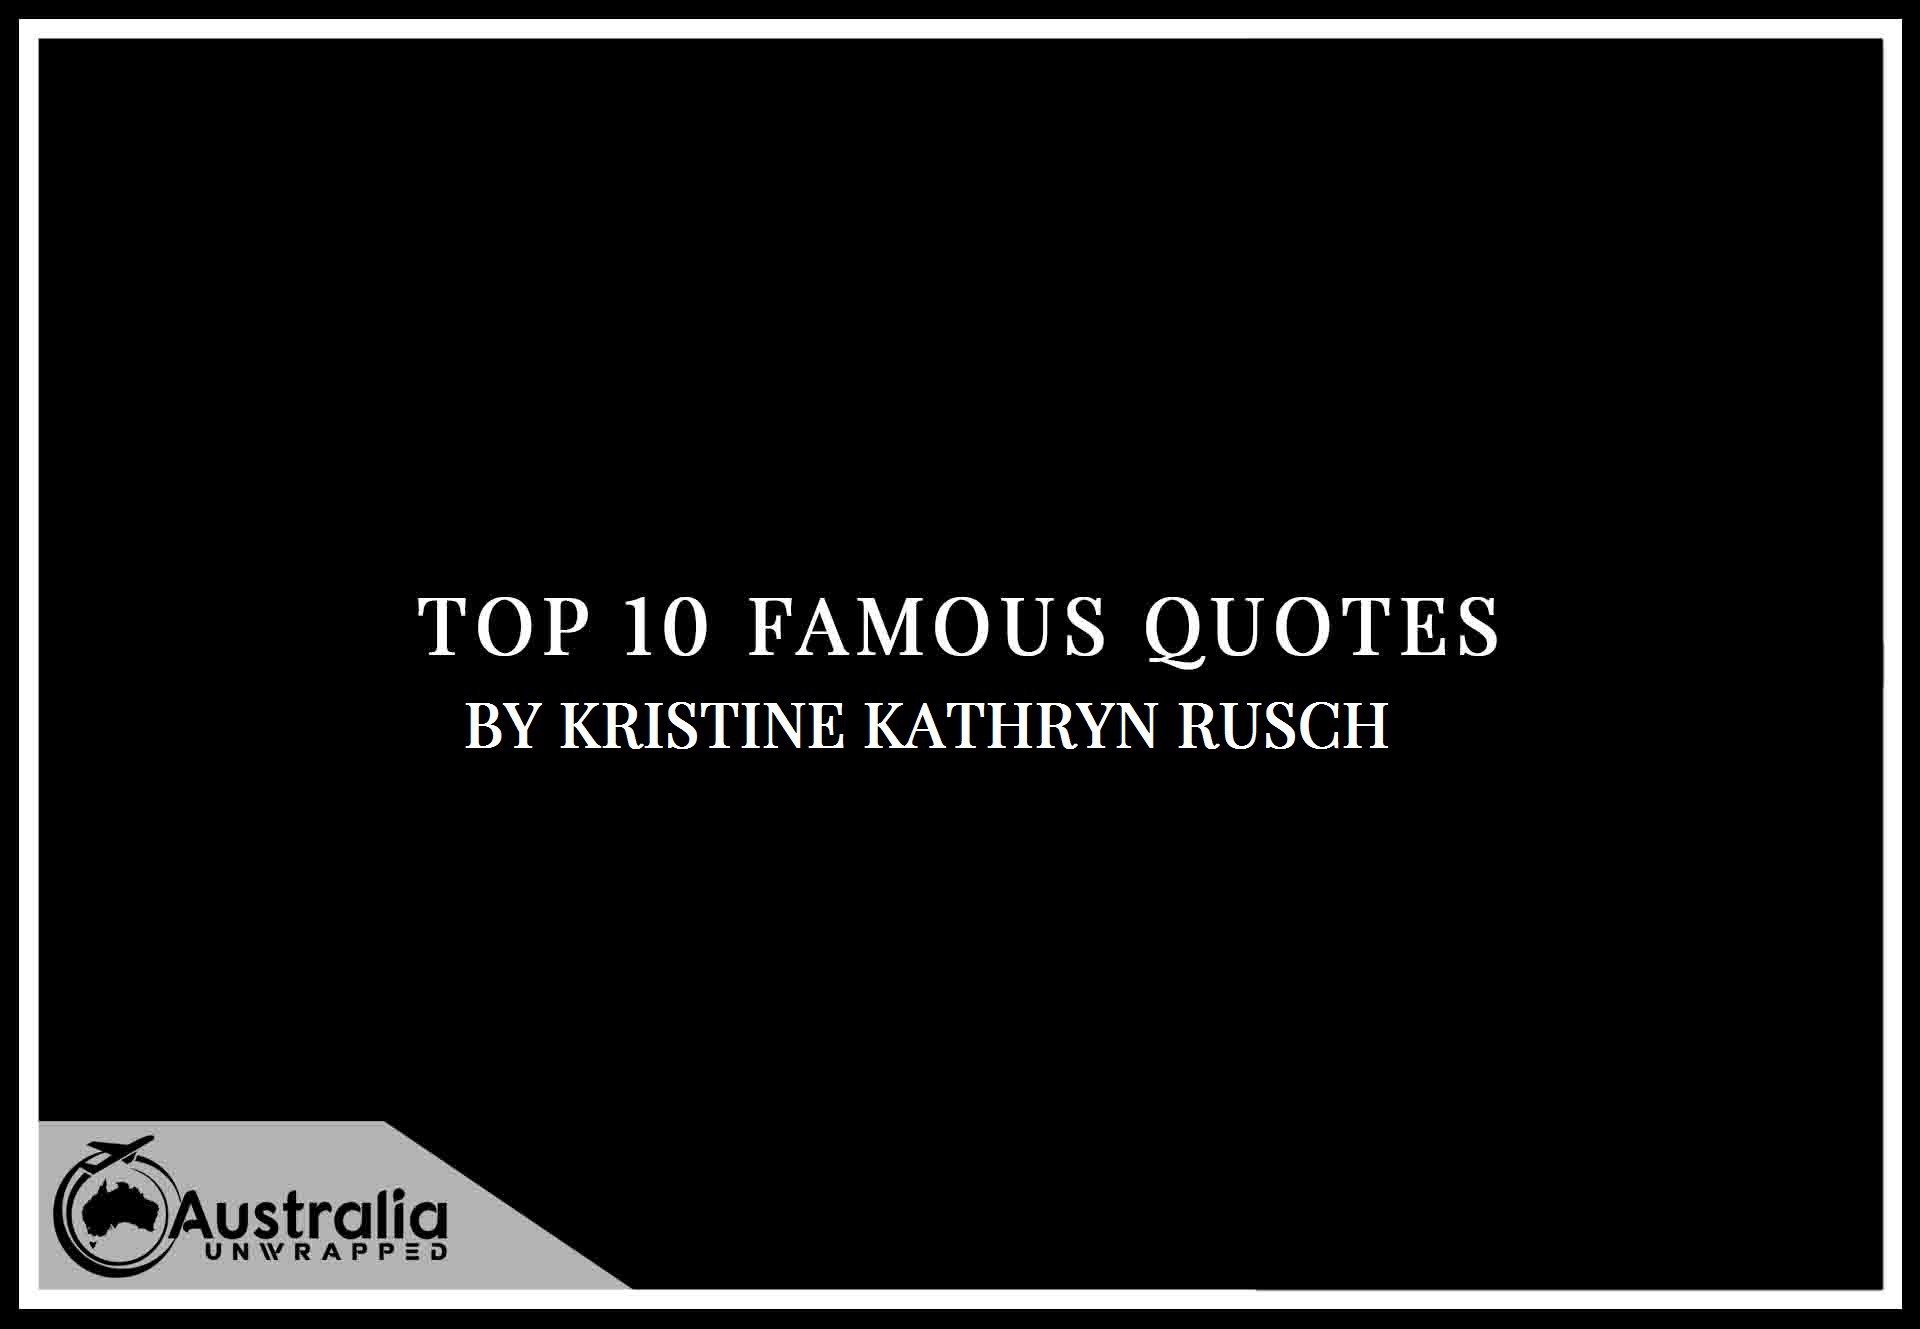 Kristine Kathryn Rusch's Top 10 Popular and Famous Quotes